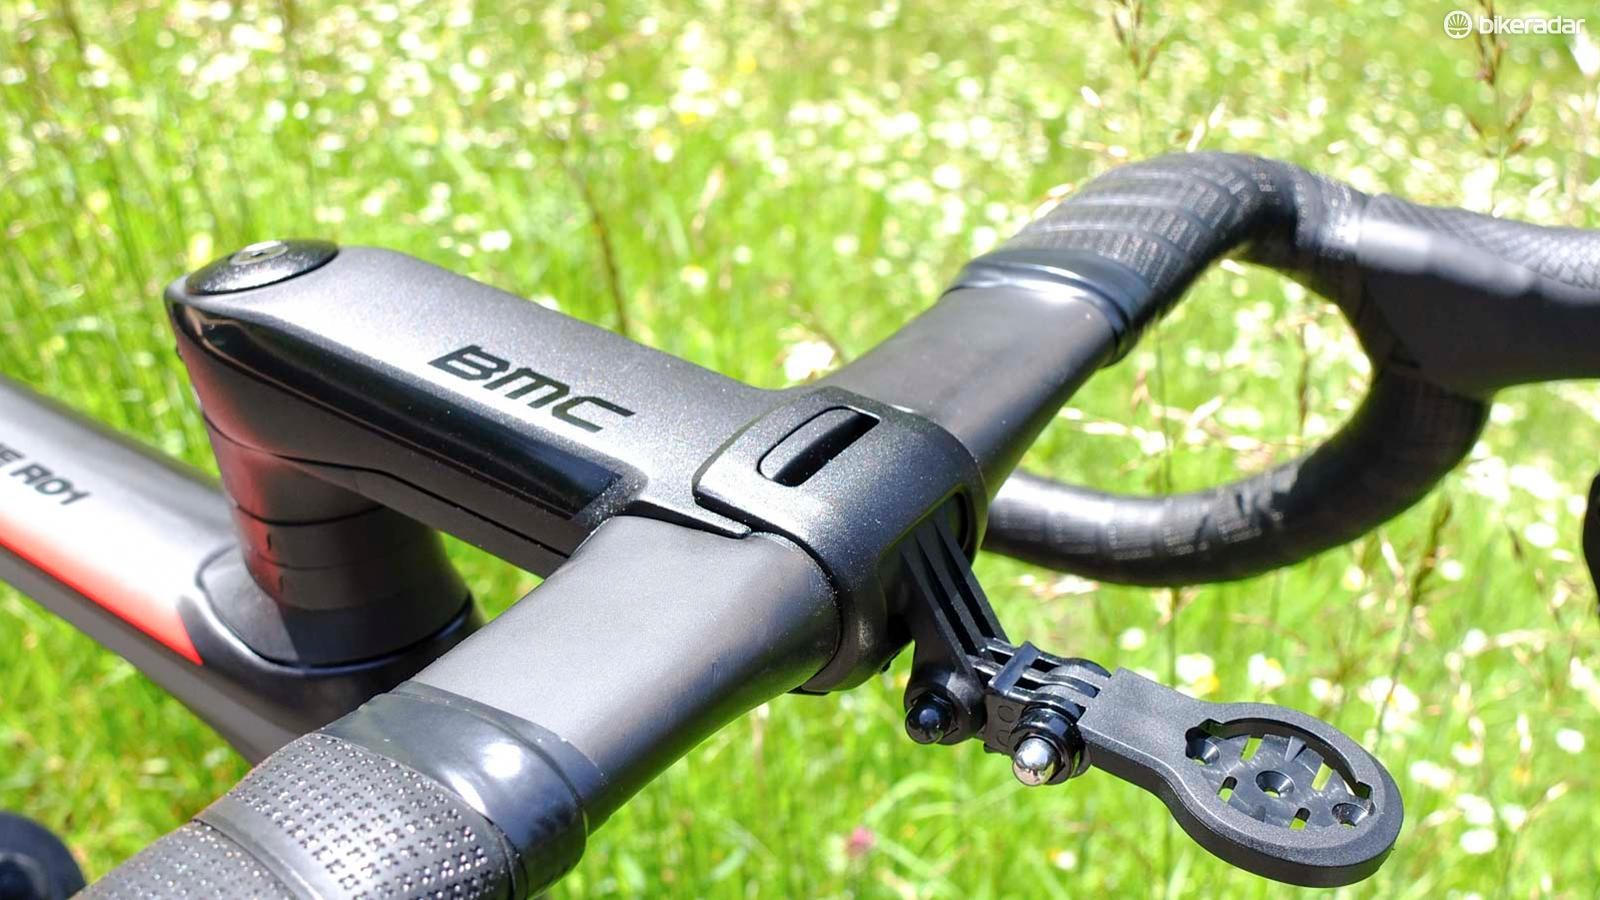 BMC's out front GPS/accessory mount slots inside the faceplate and can be adapted to accept any unit